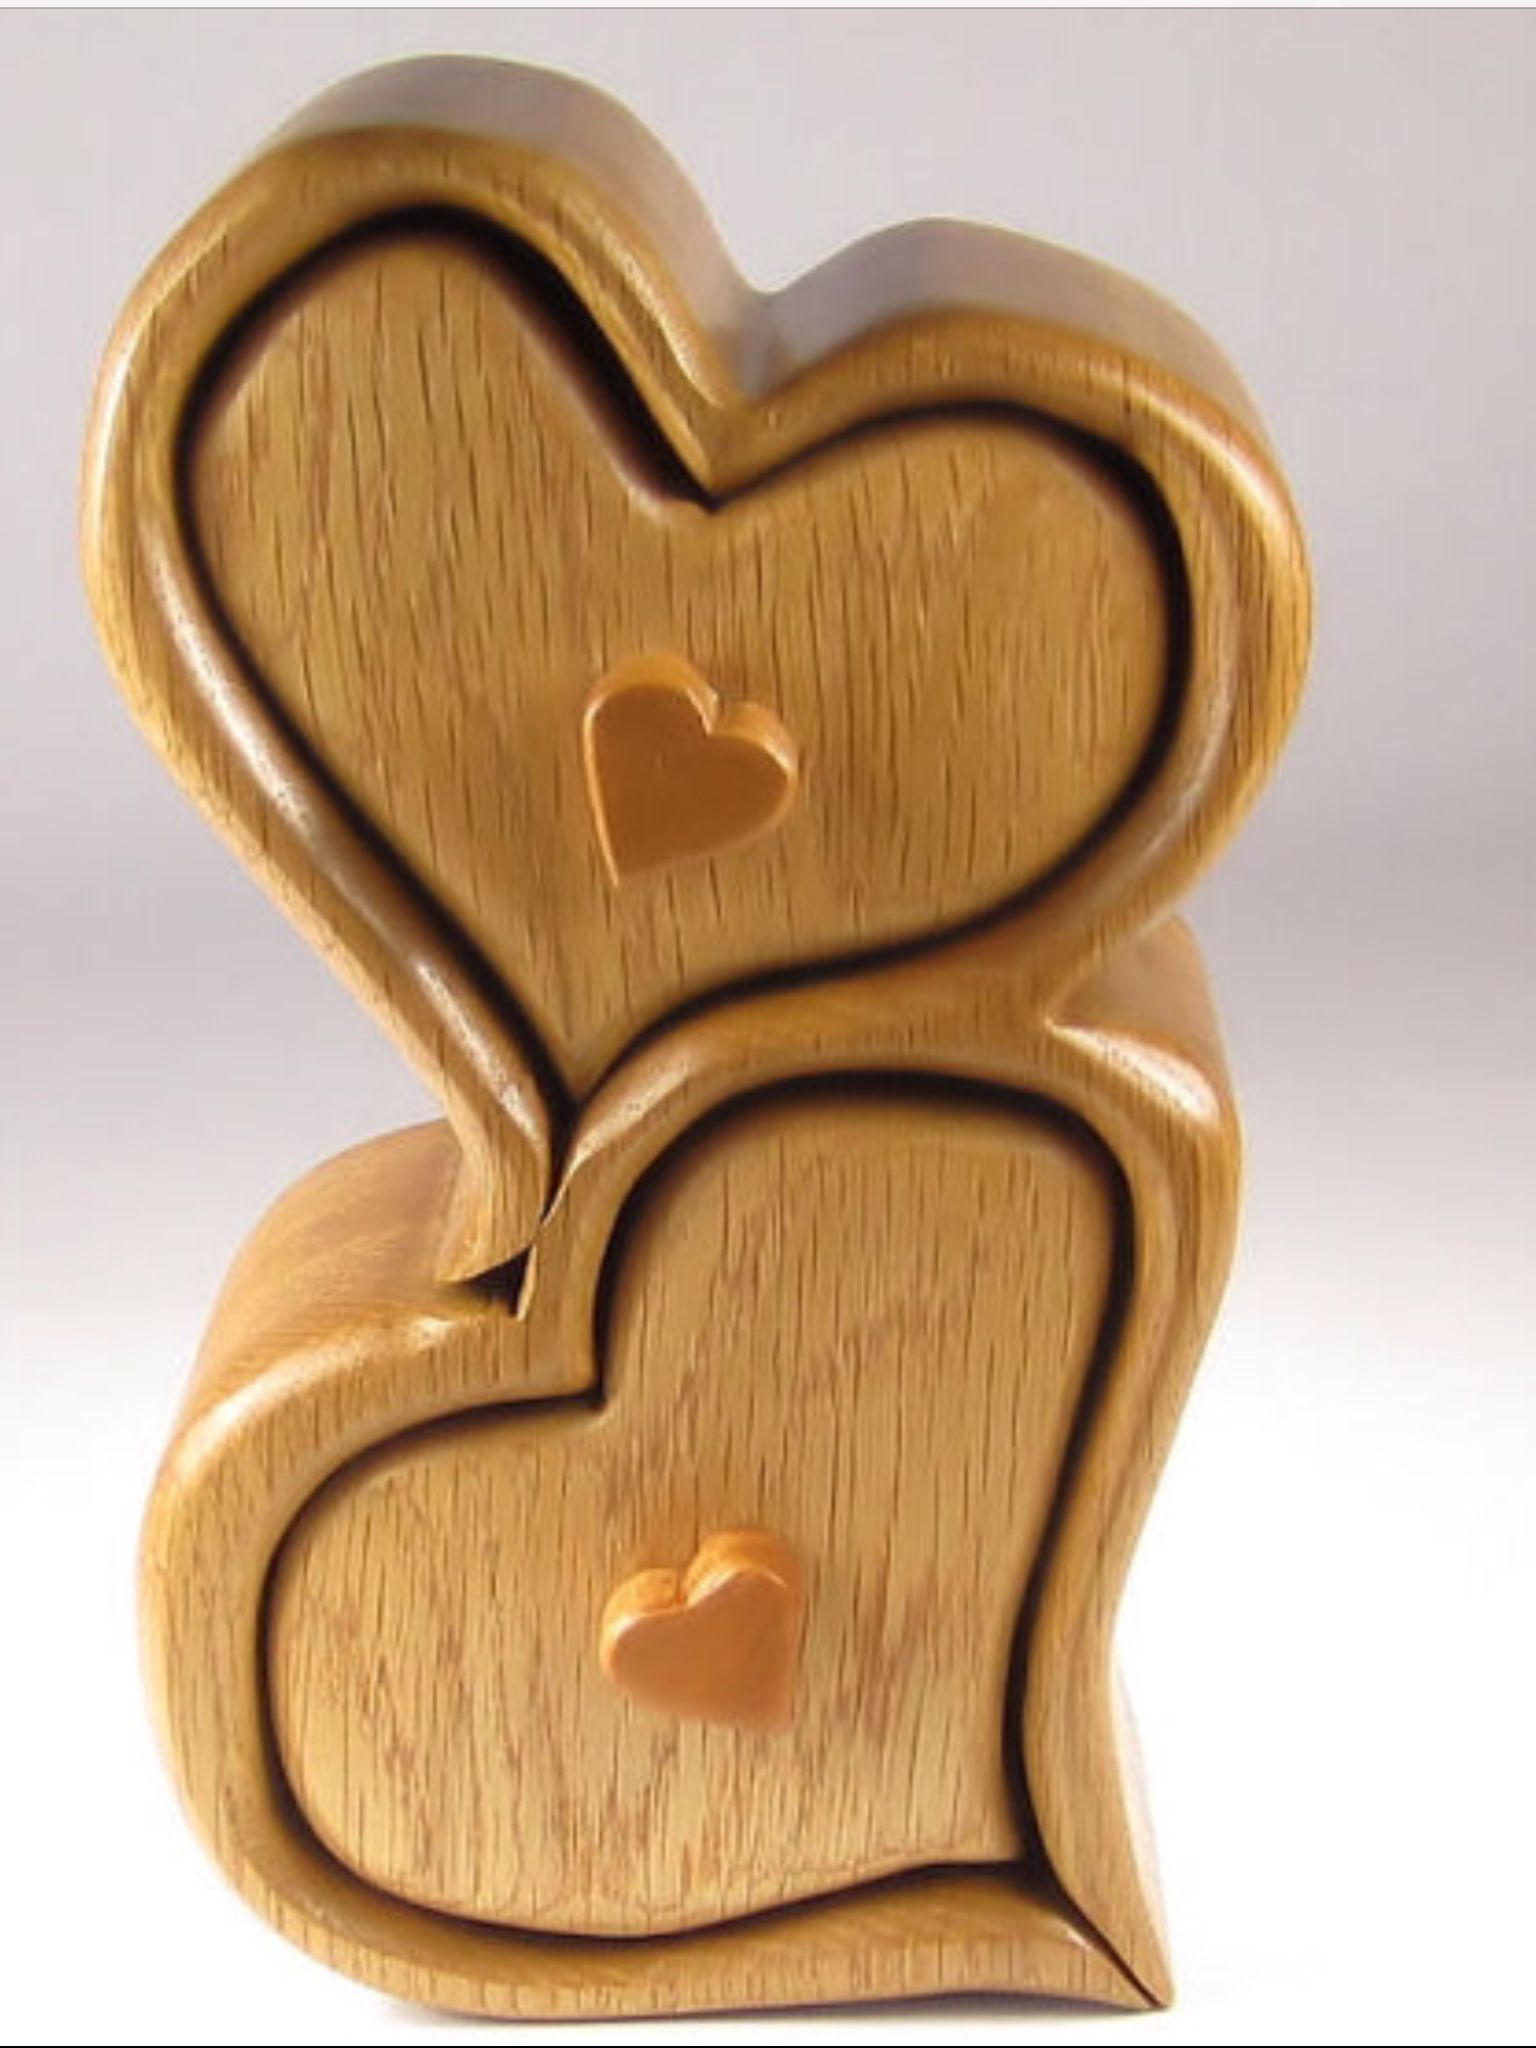 Pin By David Jayne On Gifts Pinterest Bandsaw Box Woodworking